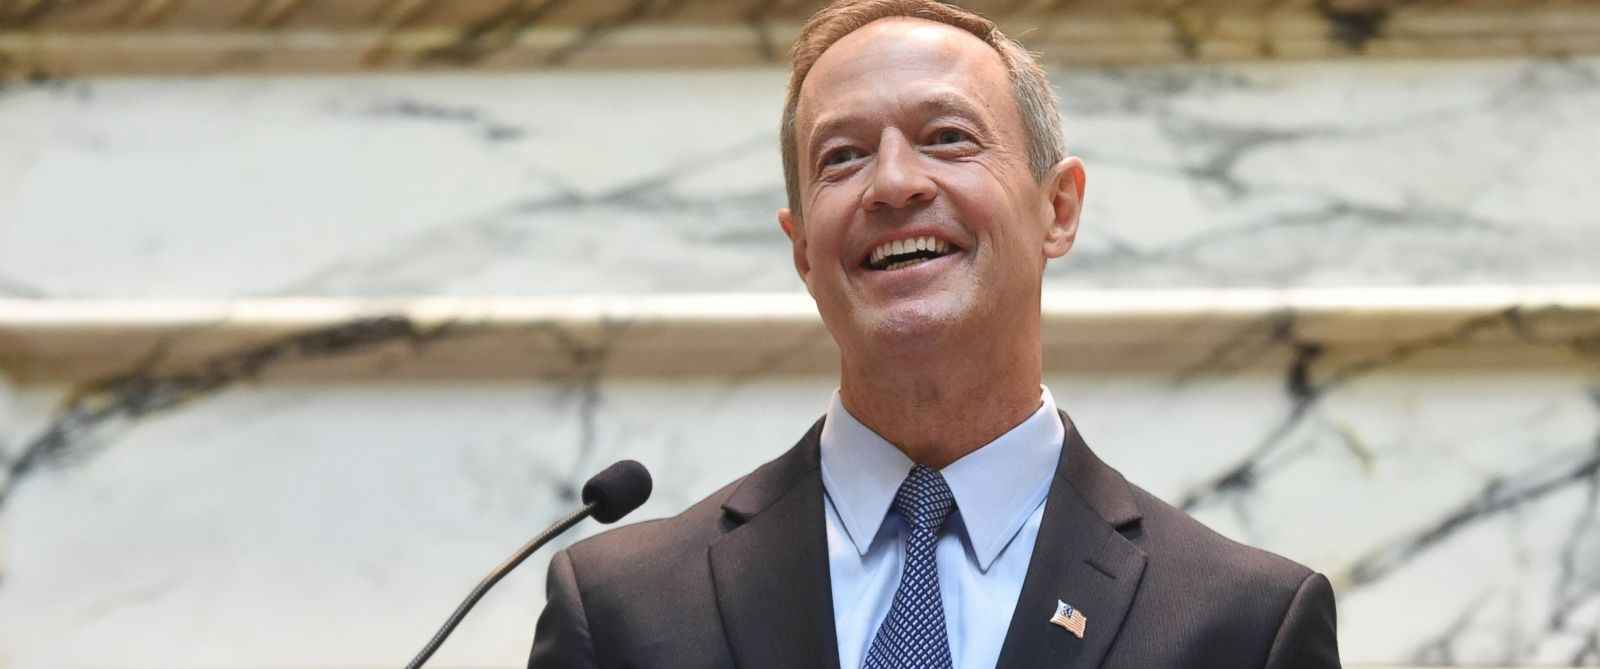 PHOTO: Governor Martin OMalley is pictured on Jan. 6, 2015 in Annapolis, Md.